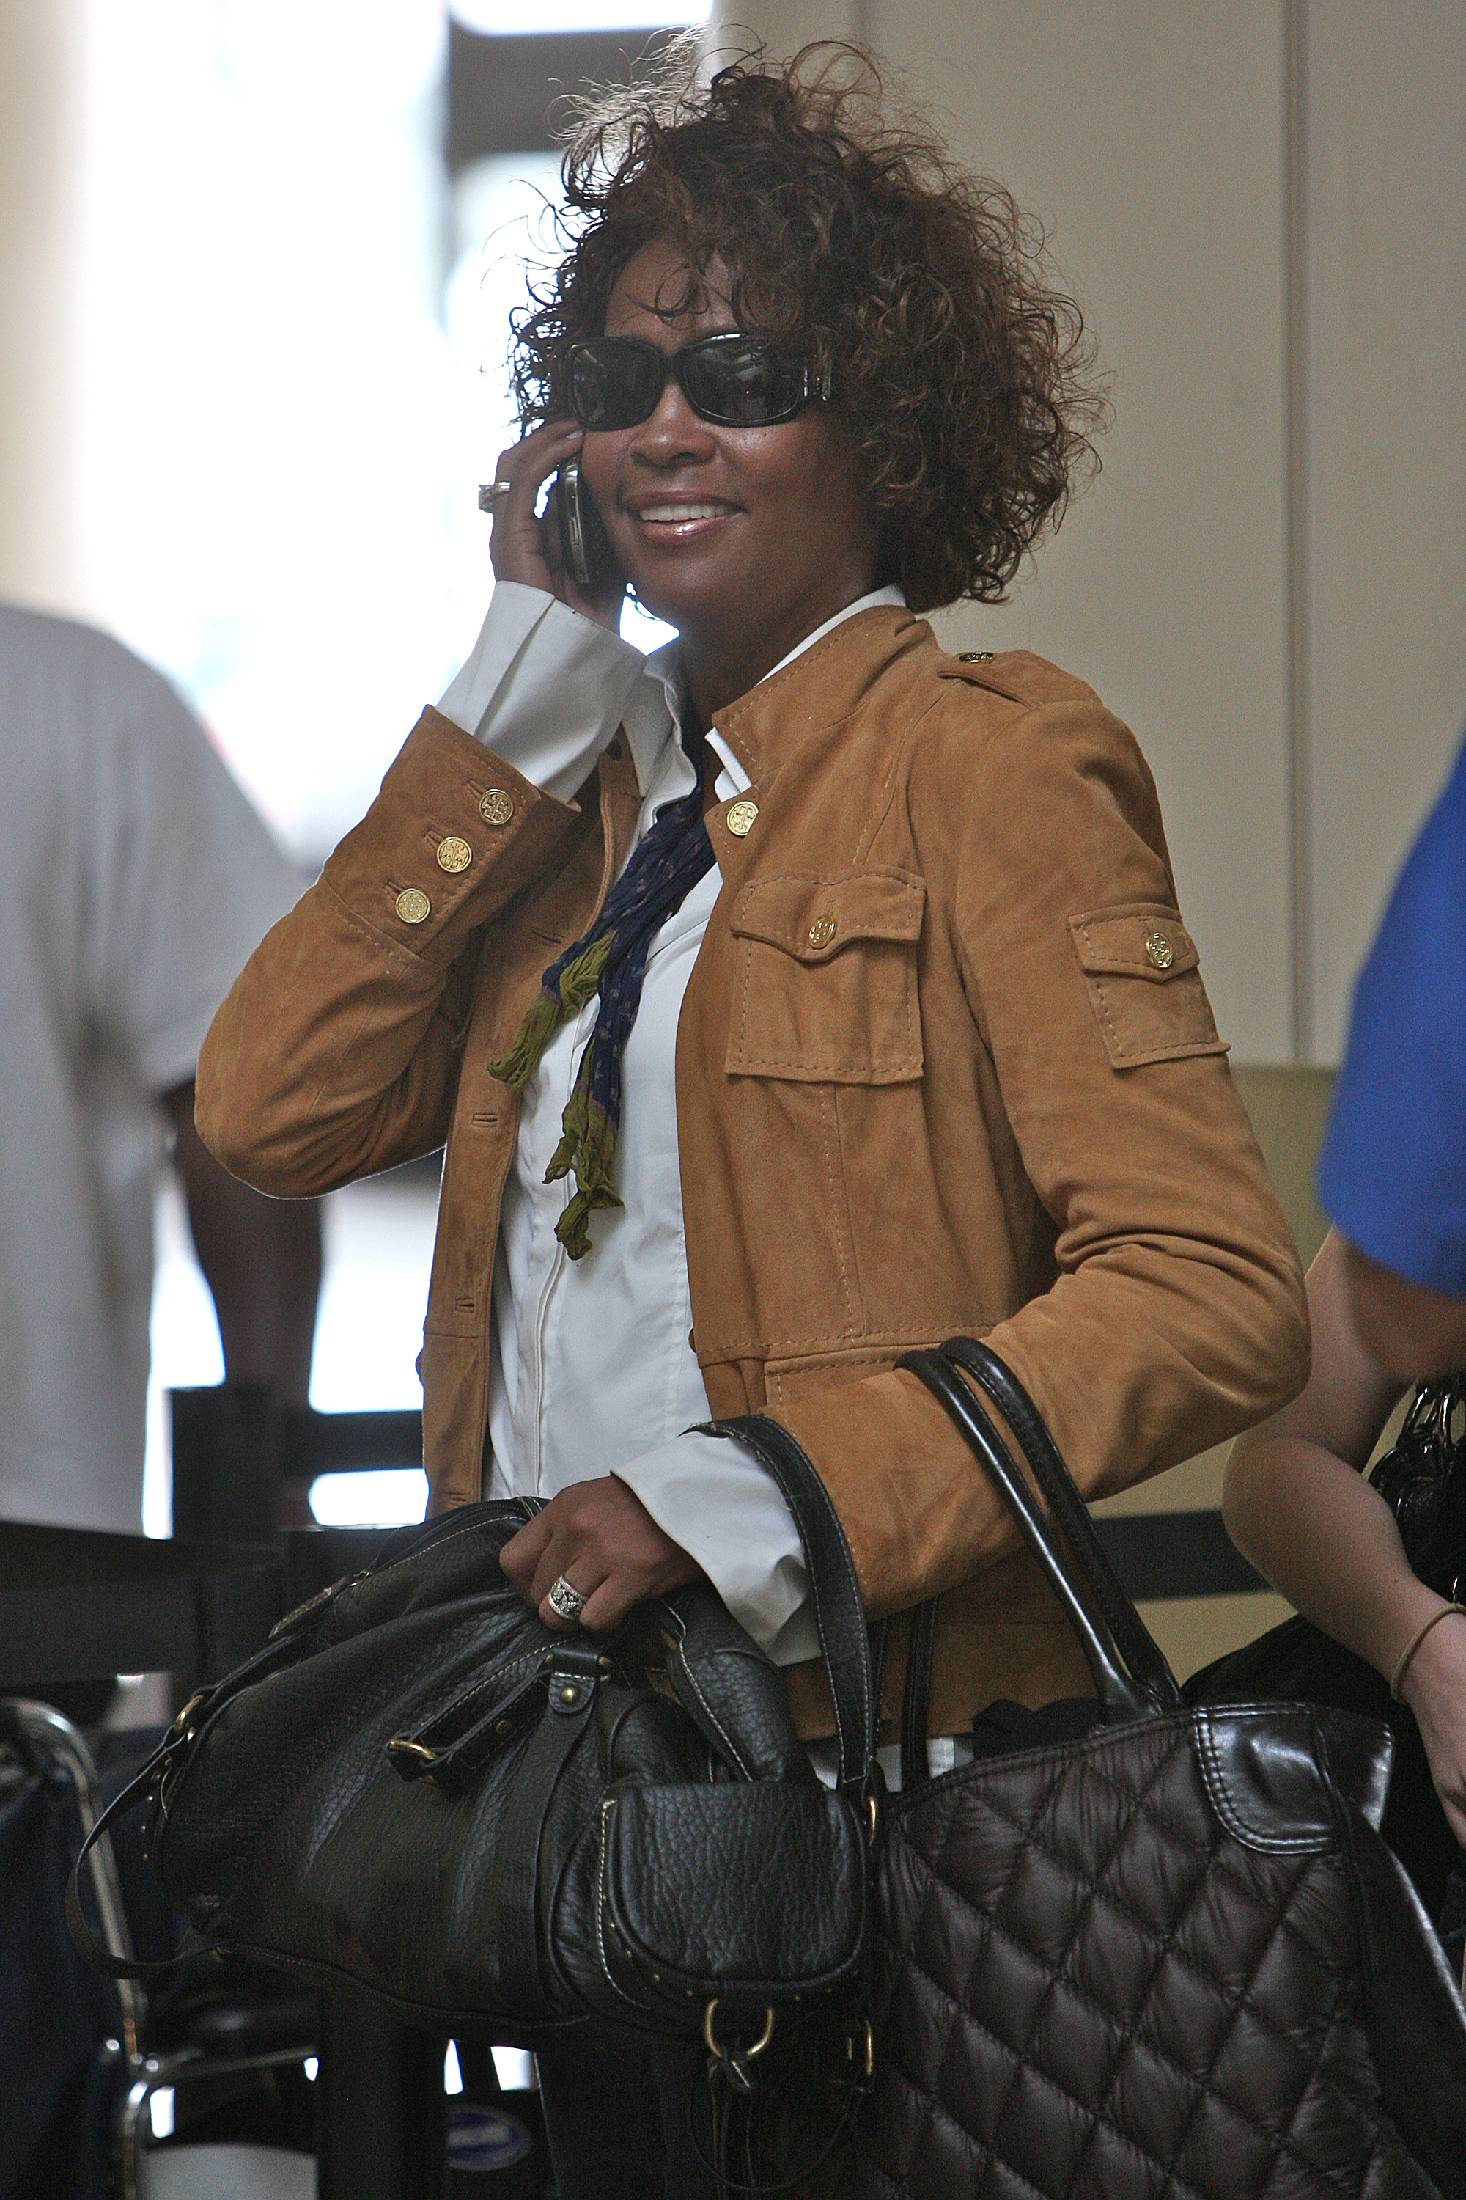 22891_whitney_houston_arriving_at_lax_tikipeter_celebritycity_007_122_101lo.jpg